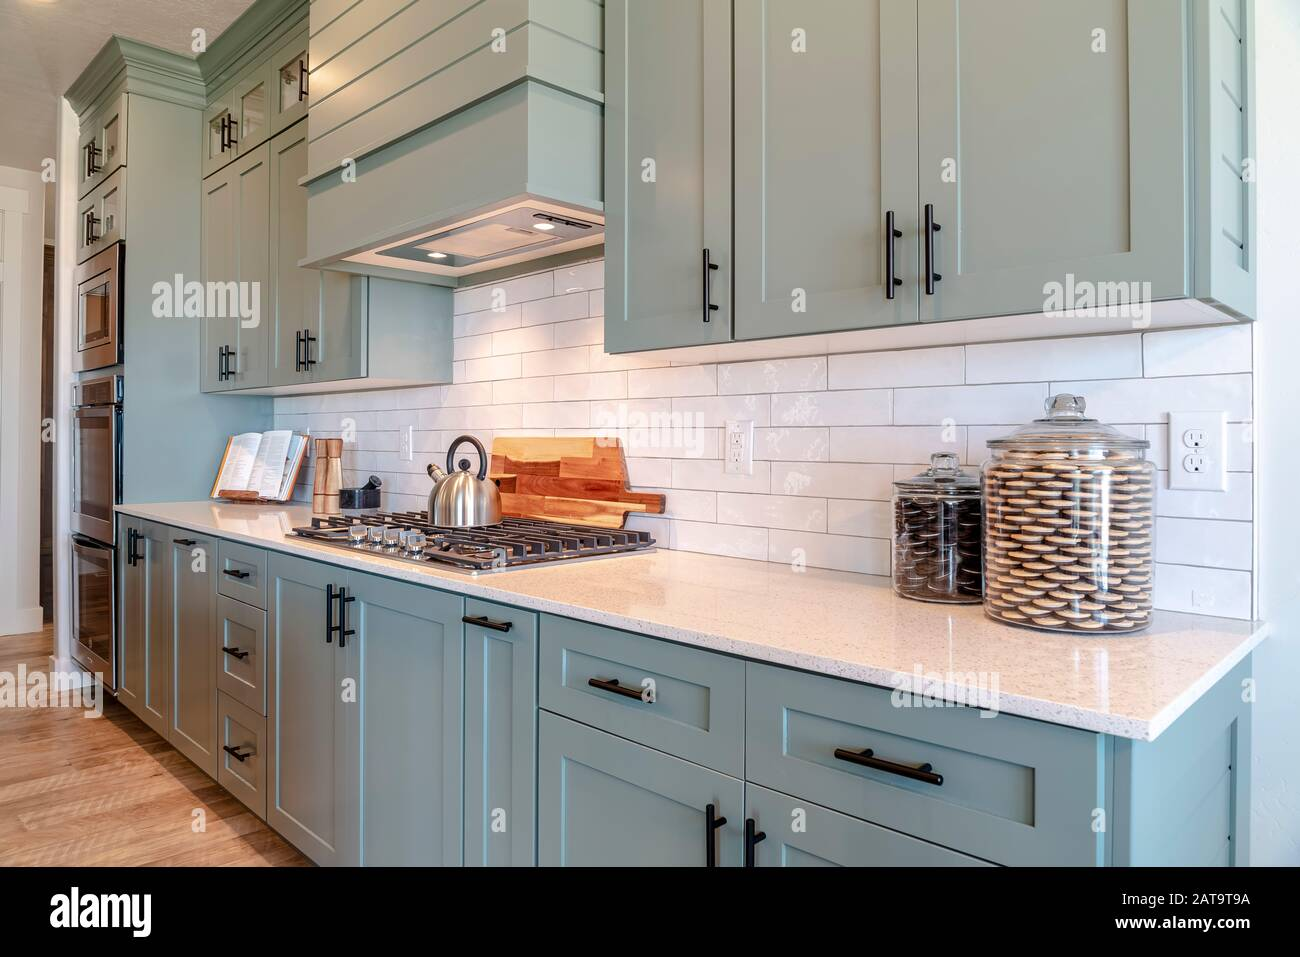 - Kitchen Interior With Cooktop On White Counter Top Under Hanging